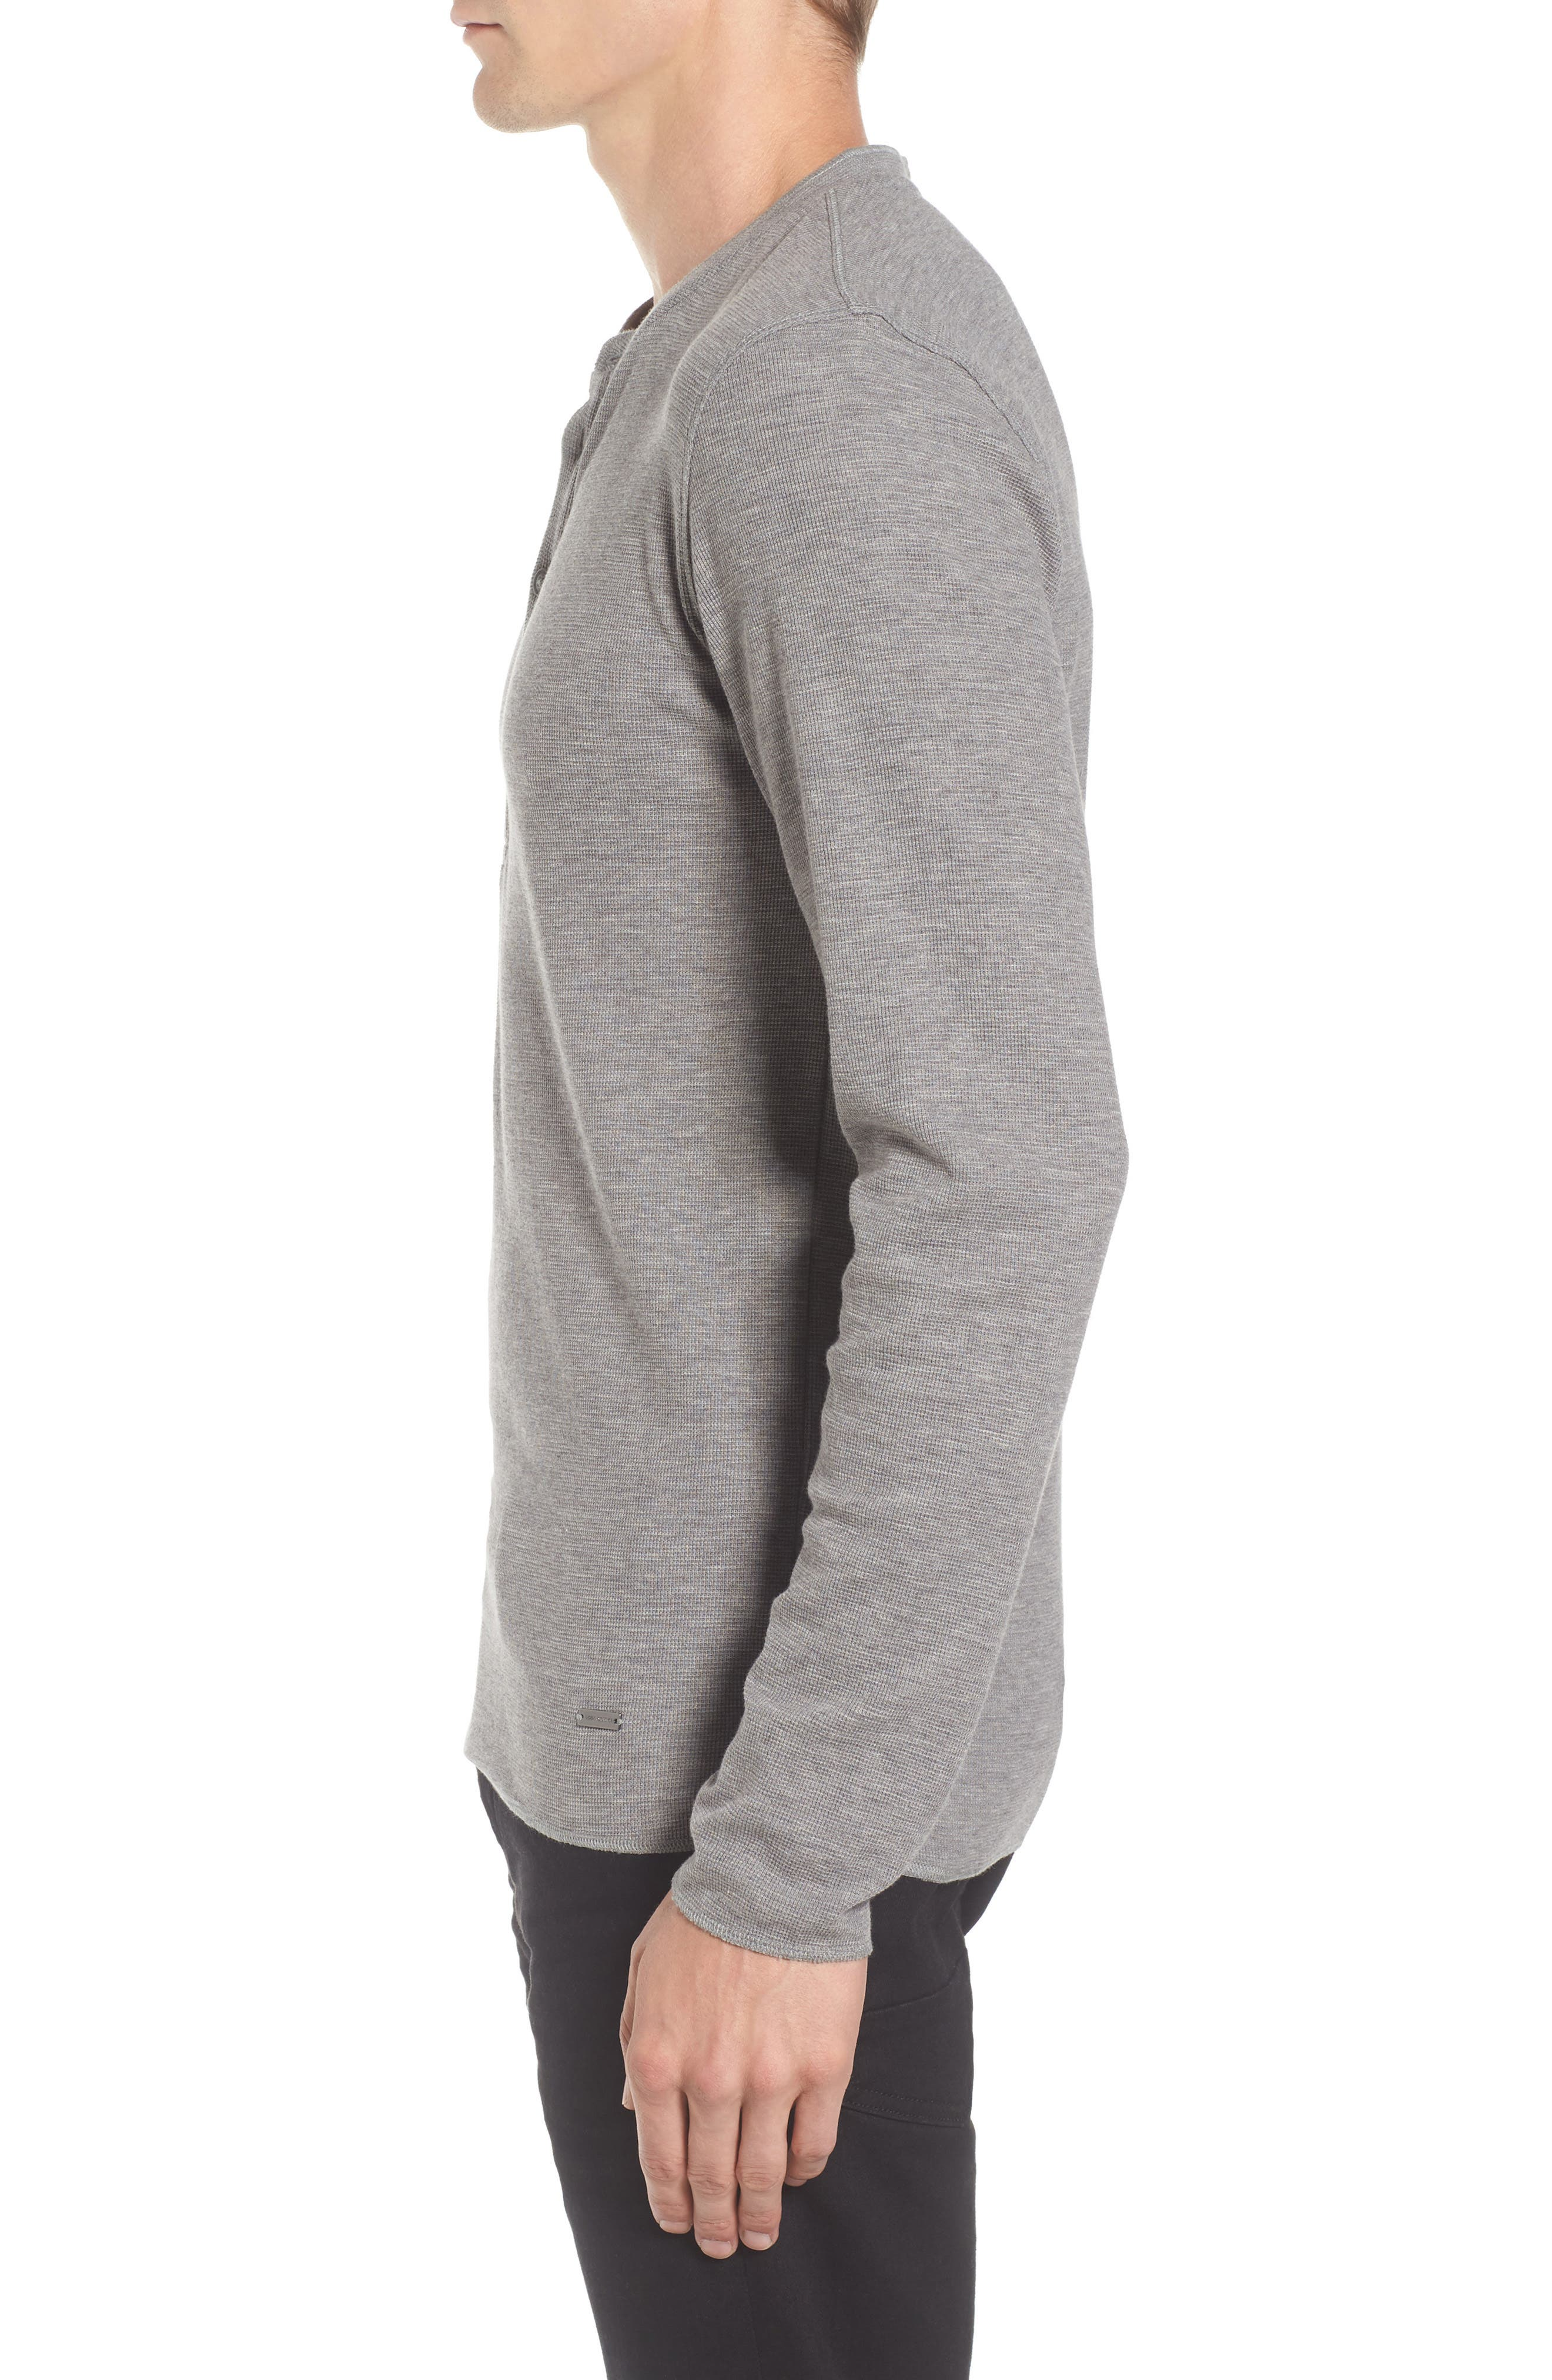 Topsider Thermal Henley,                             Alternate thumbnail 4, color,                             Light Pastel/ Grey